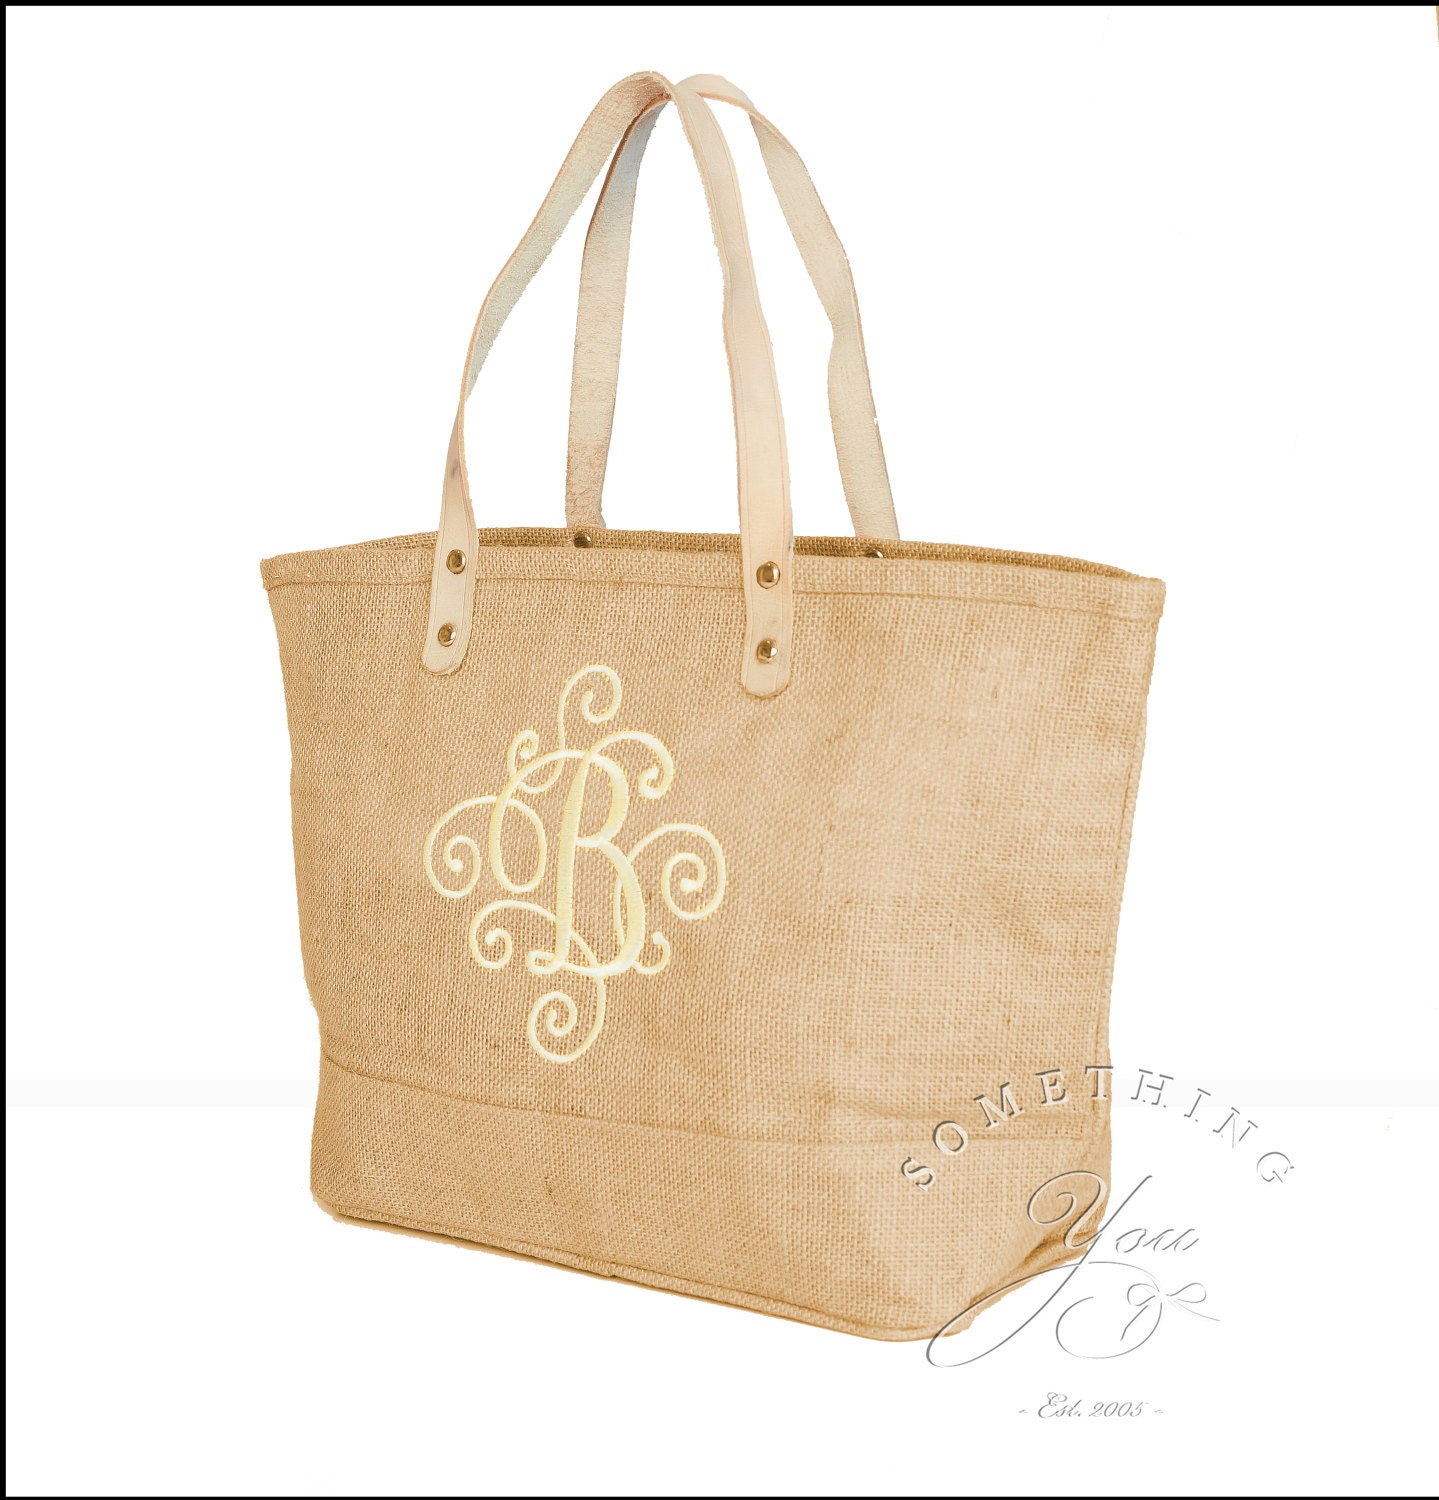 Monogrammed Initial Jute Tote Bag With Scroll Design